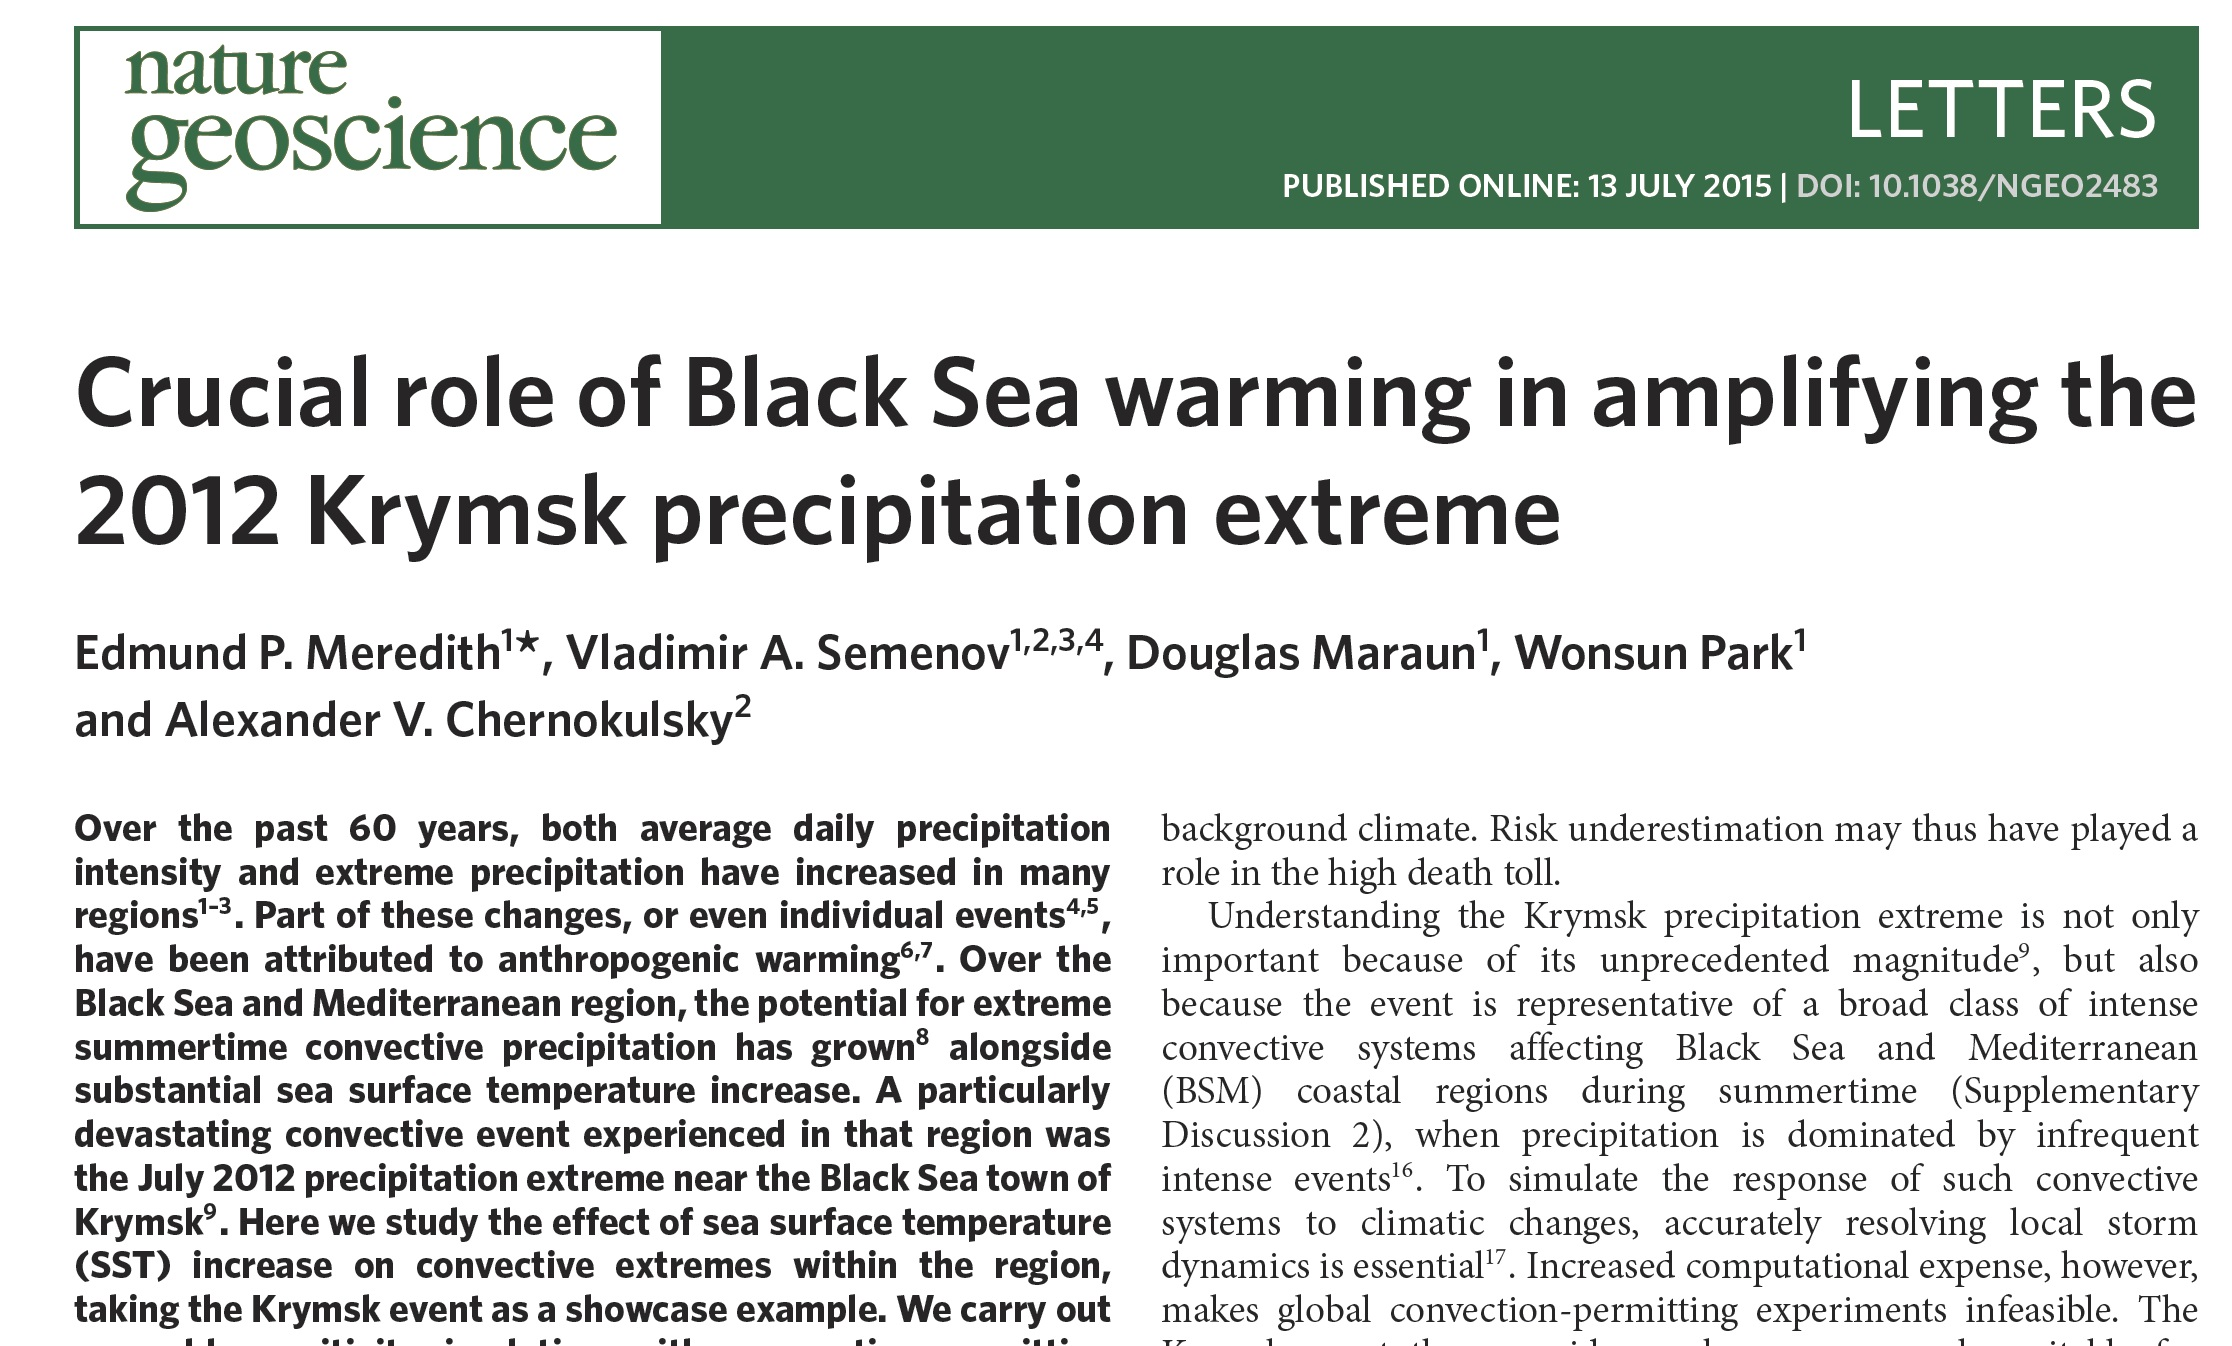 Crucial role of Black Sea warming in amplifying the 2012 Krymsk precipitation extreme